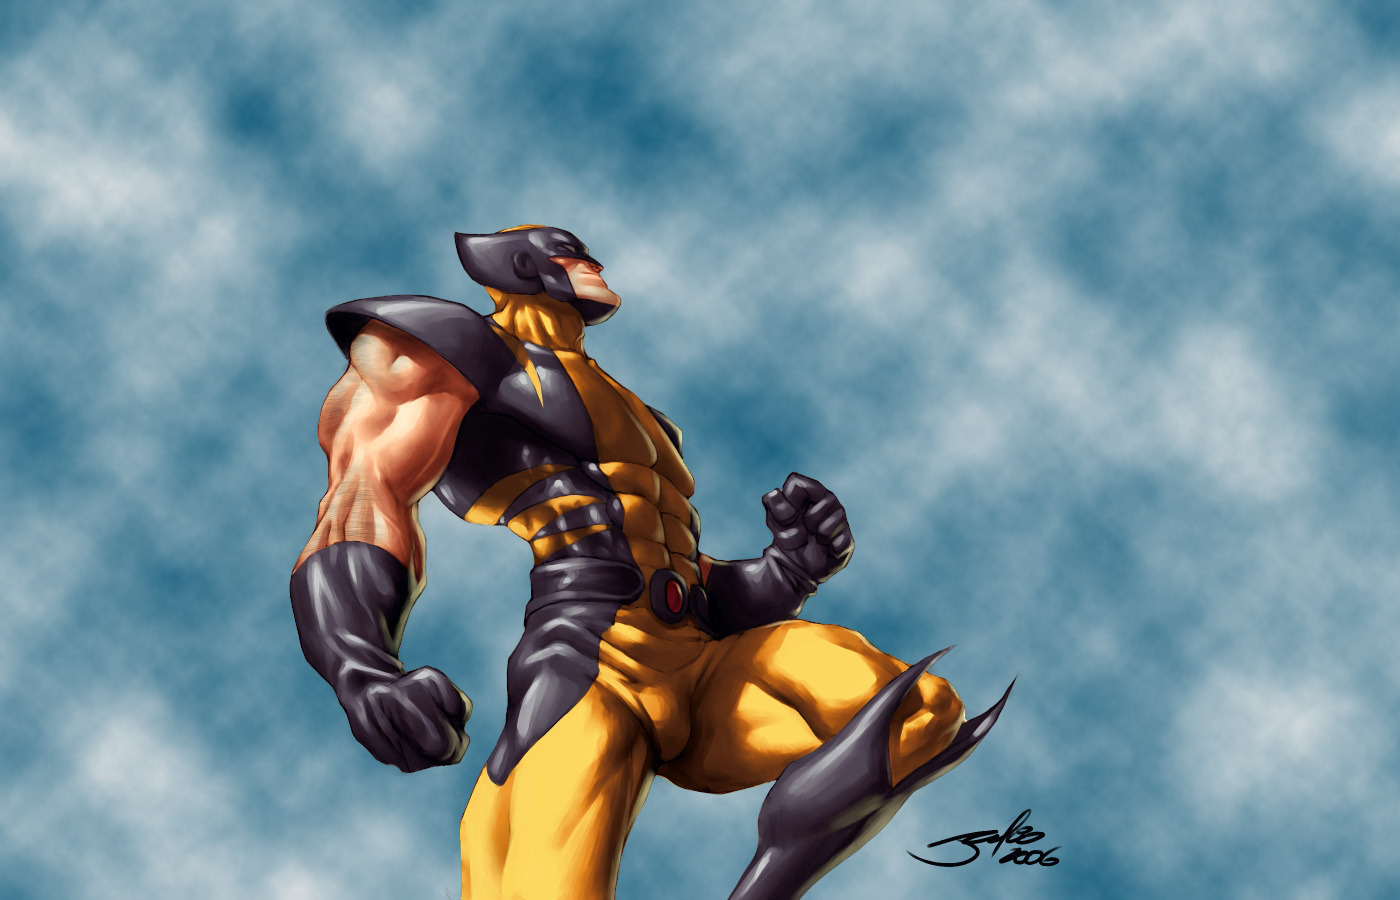 wolverine hd wallpapers for pc 23 cartoon district